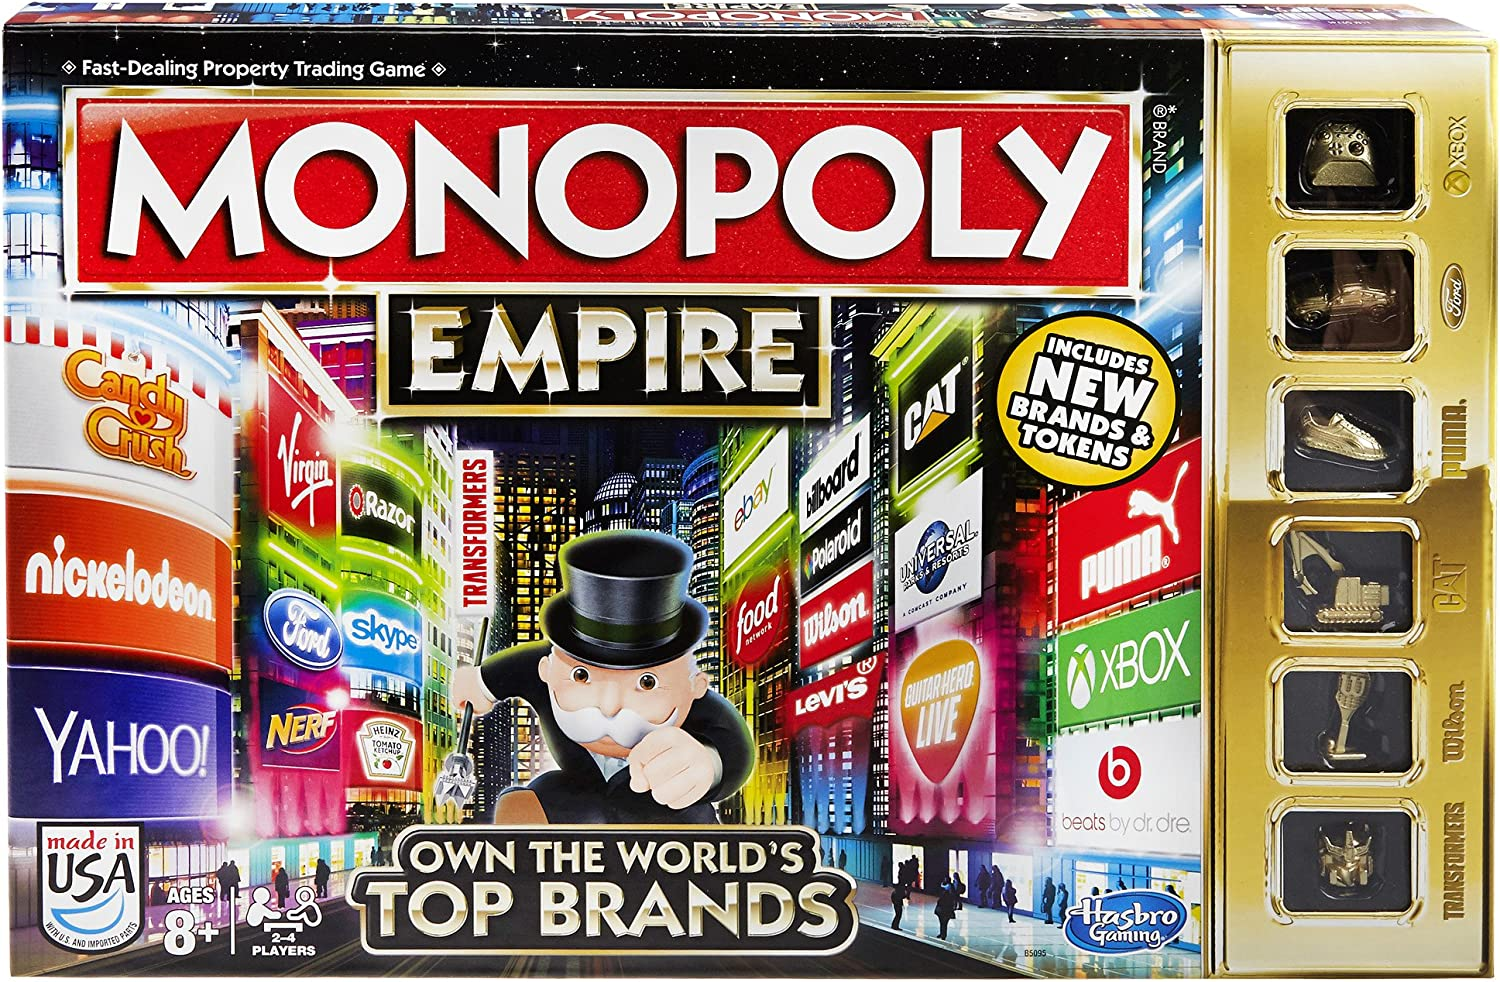 Hasbro B5095 Monopoly Empire Game Toy